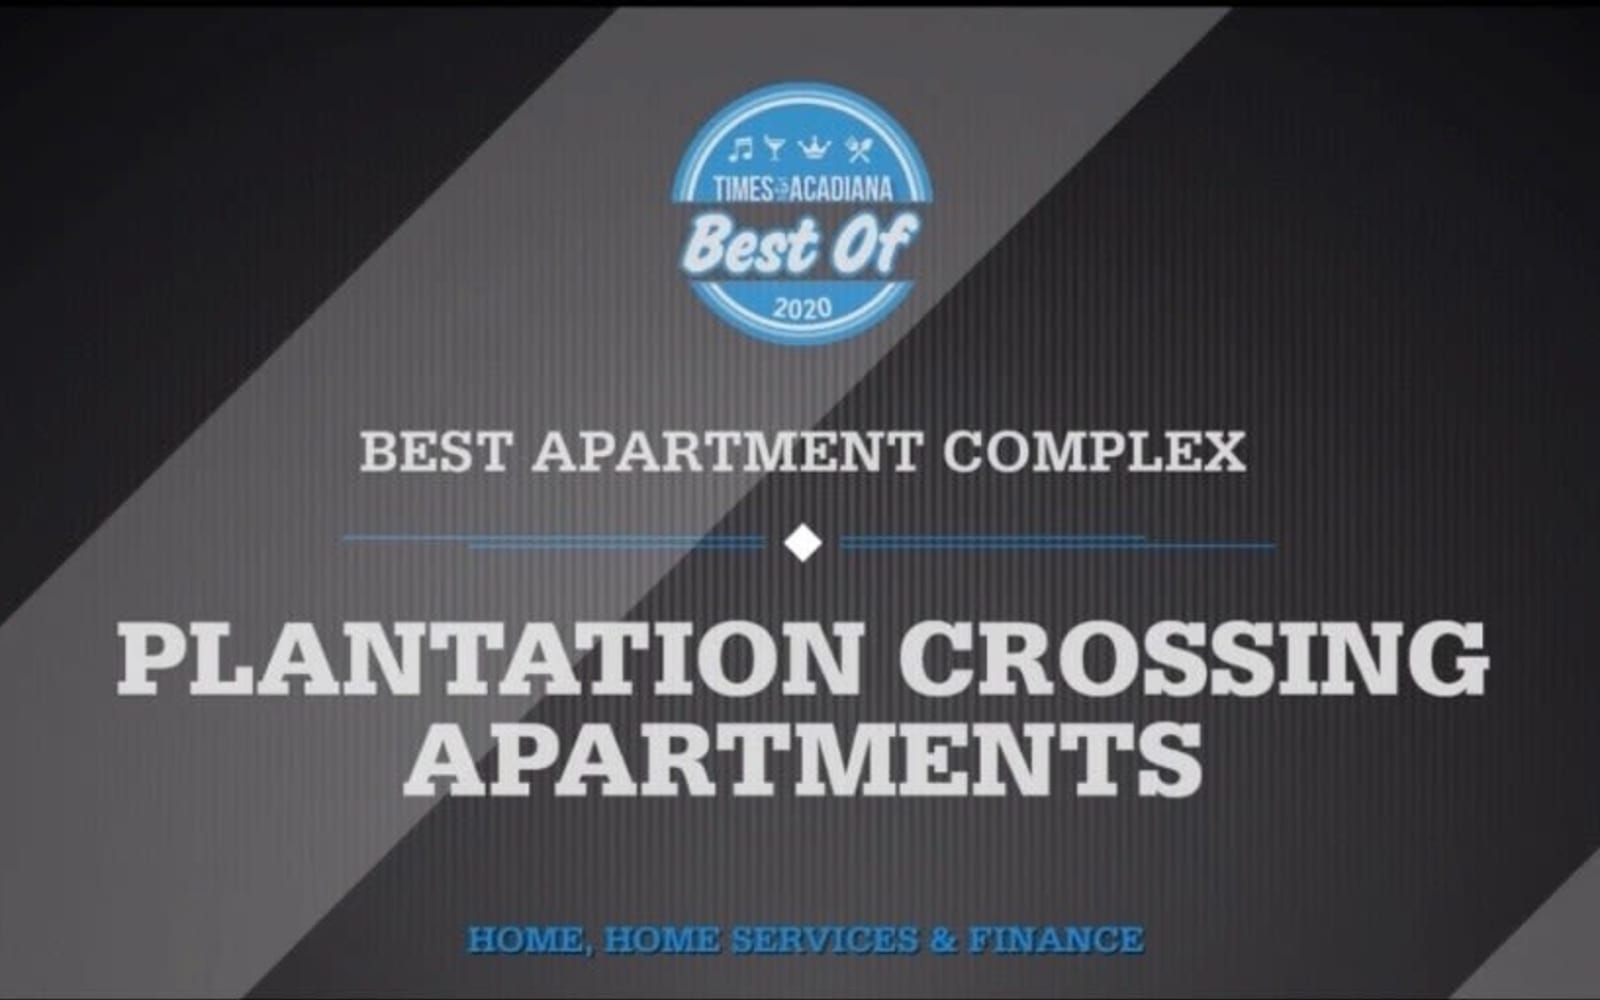 Best Apartment Complex Award - Times of Acadiana